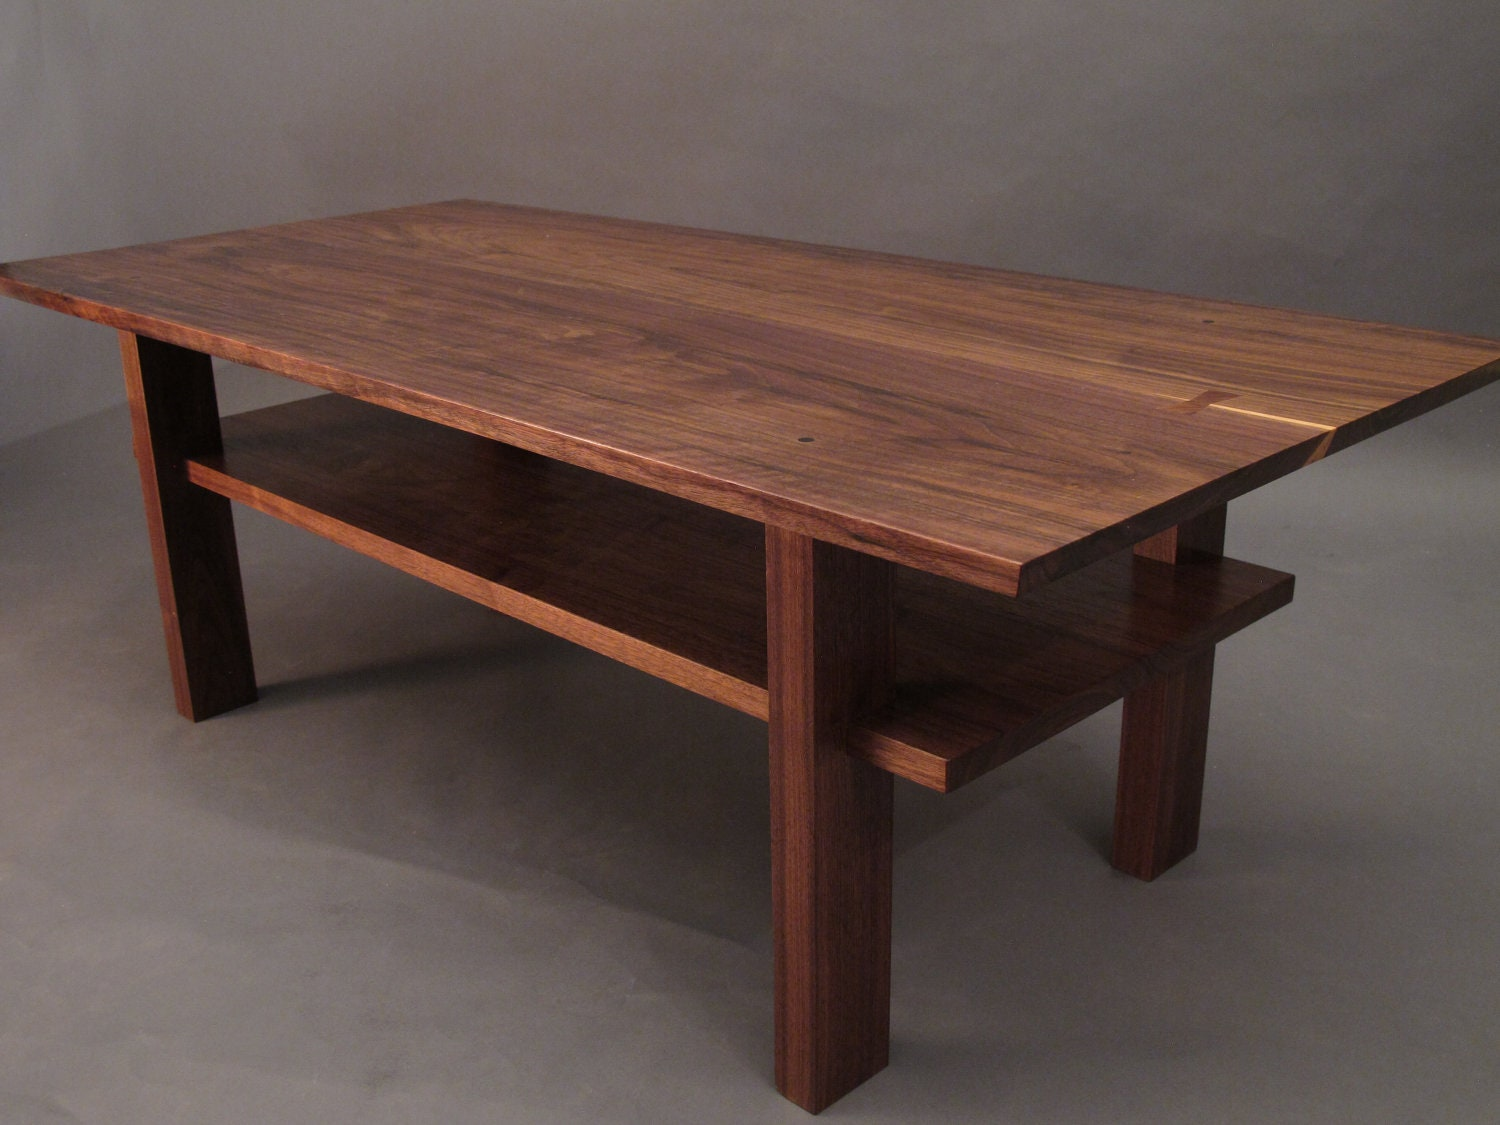 Walnut coffee table small wood tables for living room narrow for Small wood coffee table